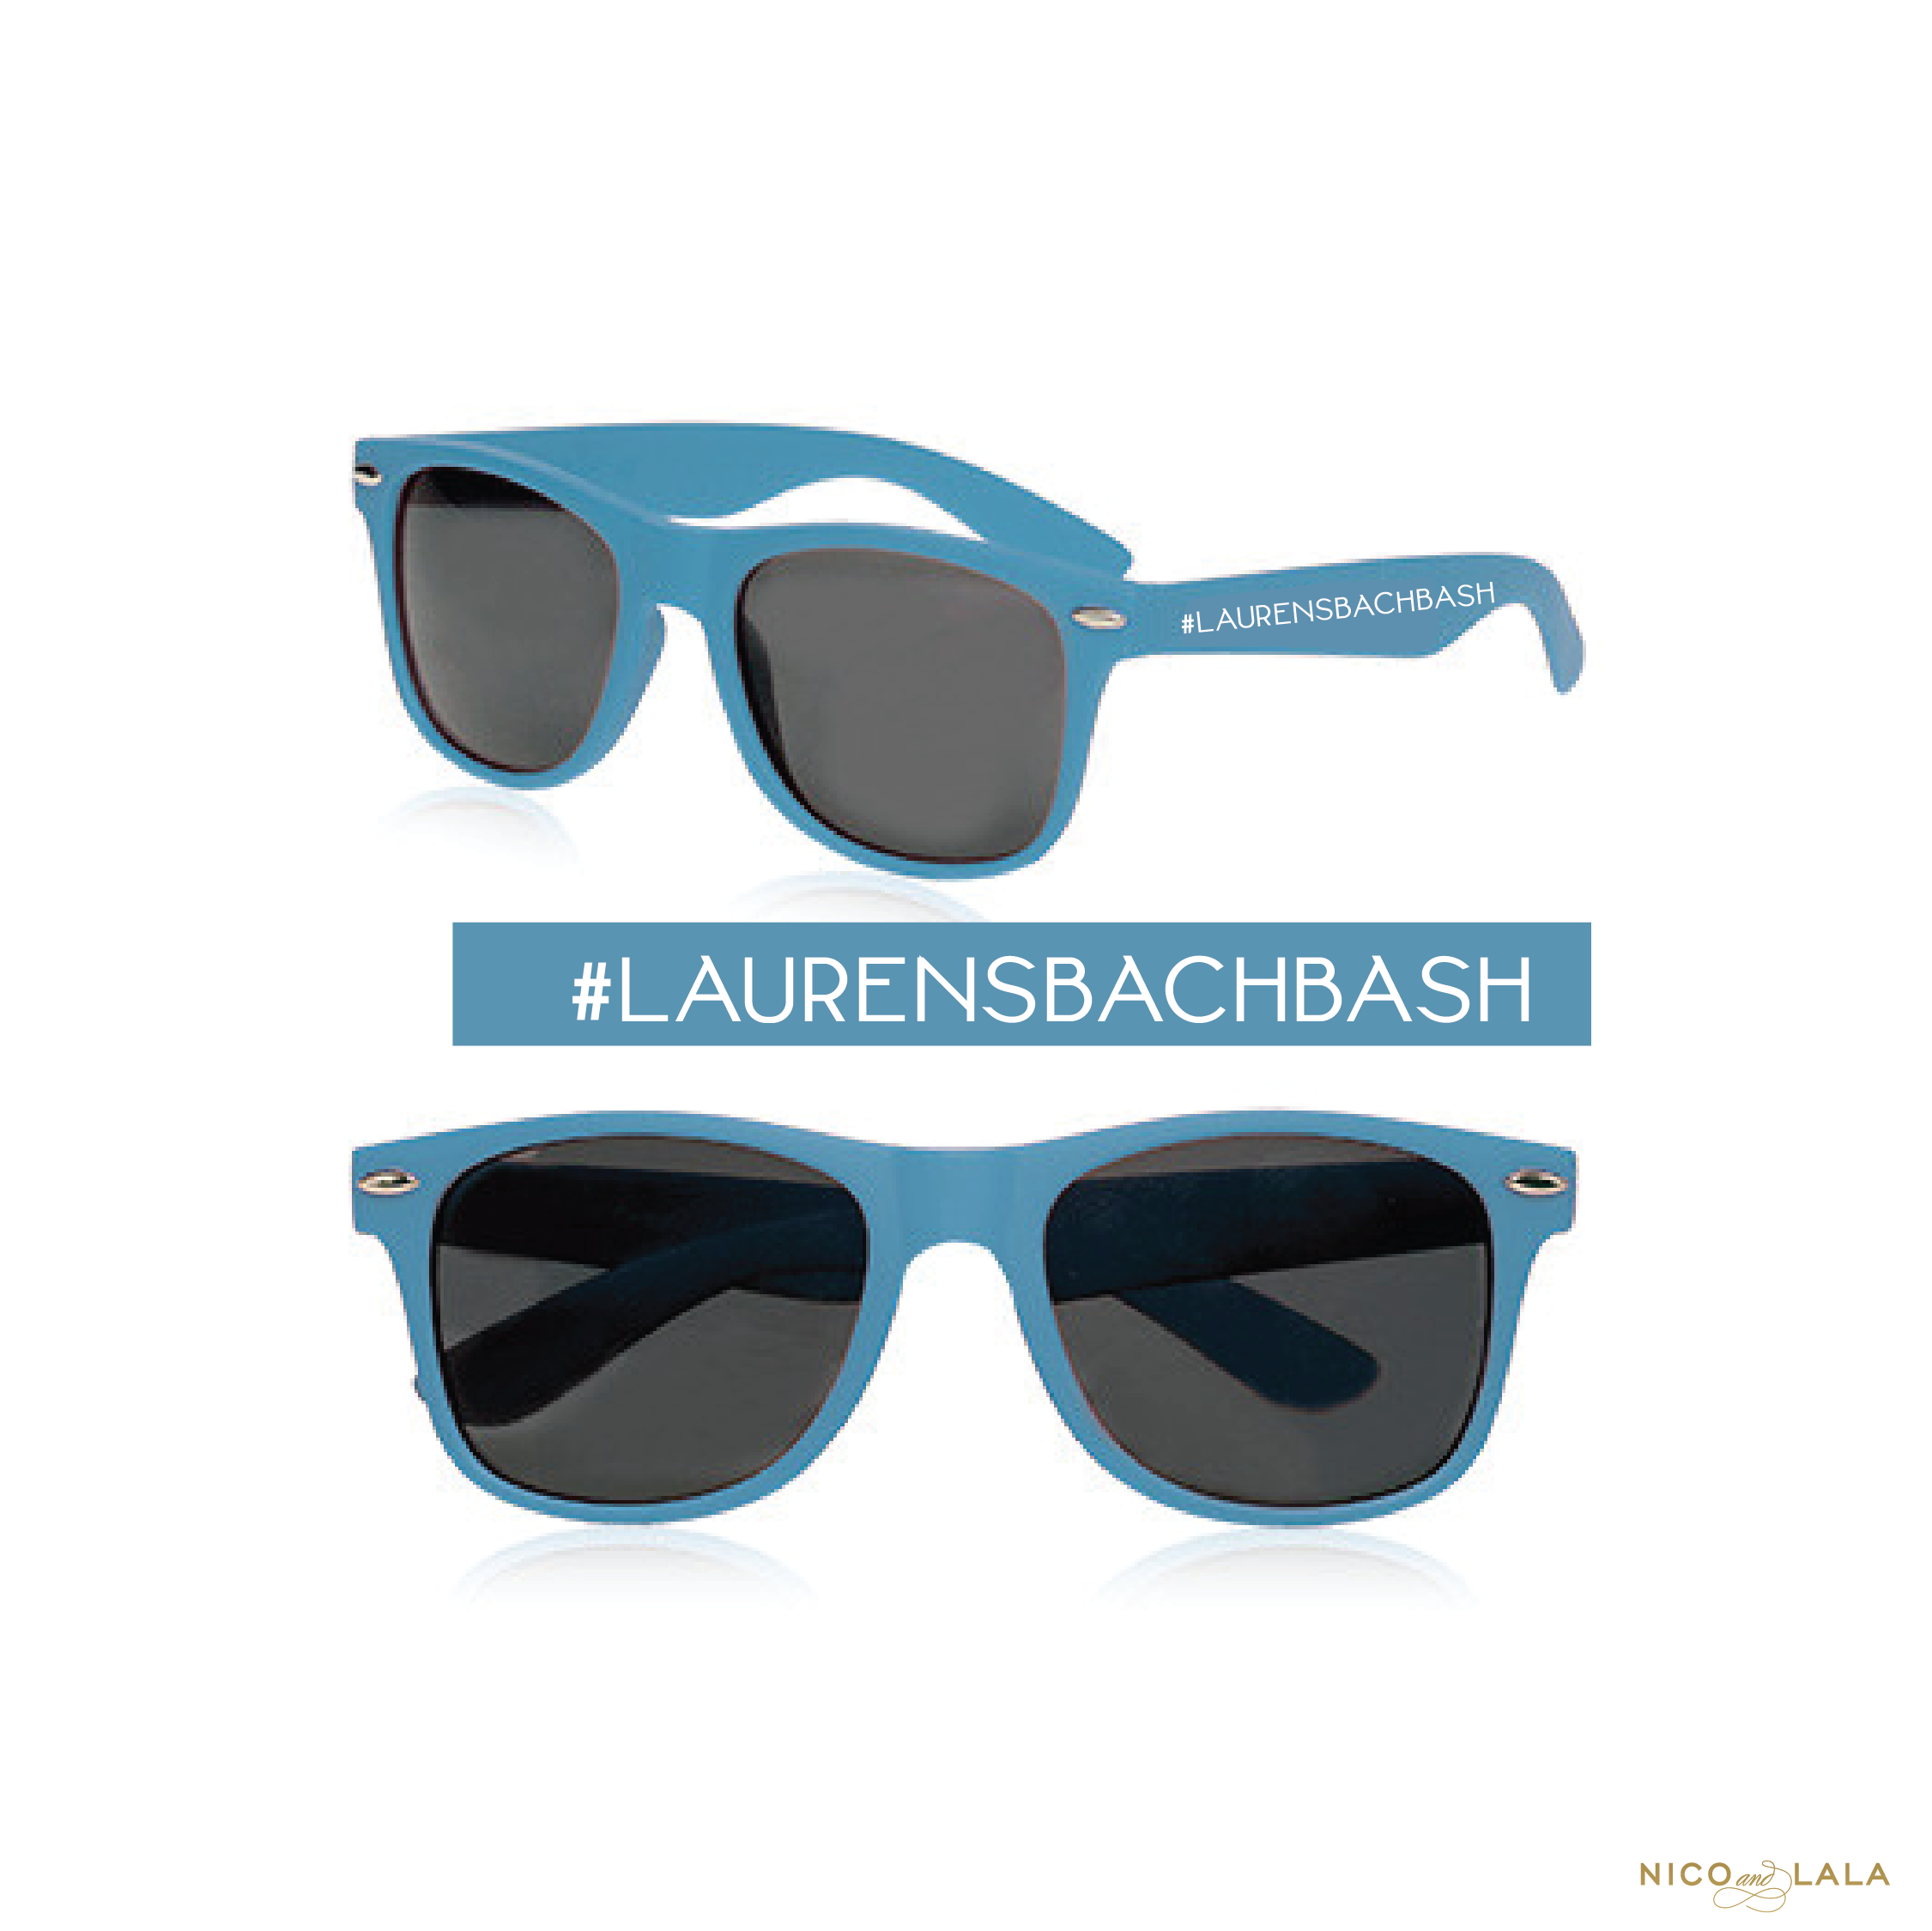 Beach Bachelorette Sunglasses